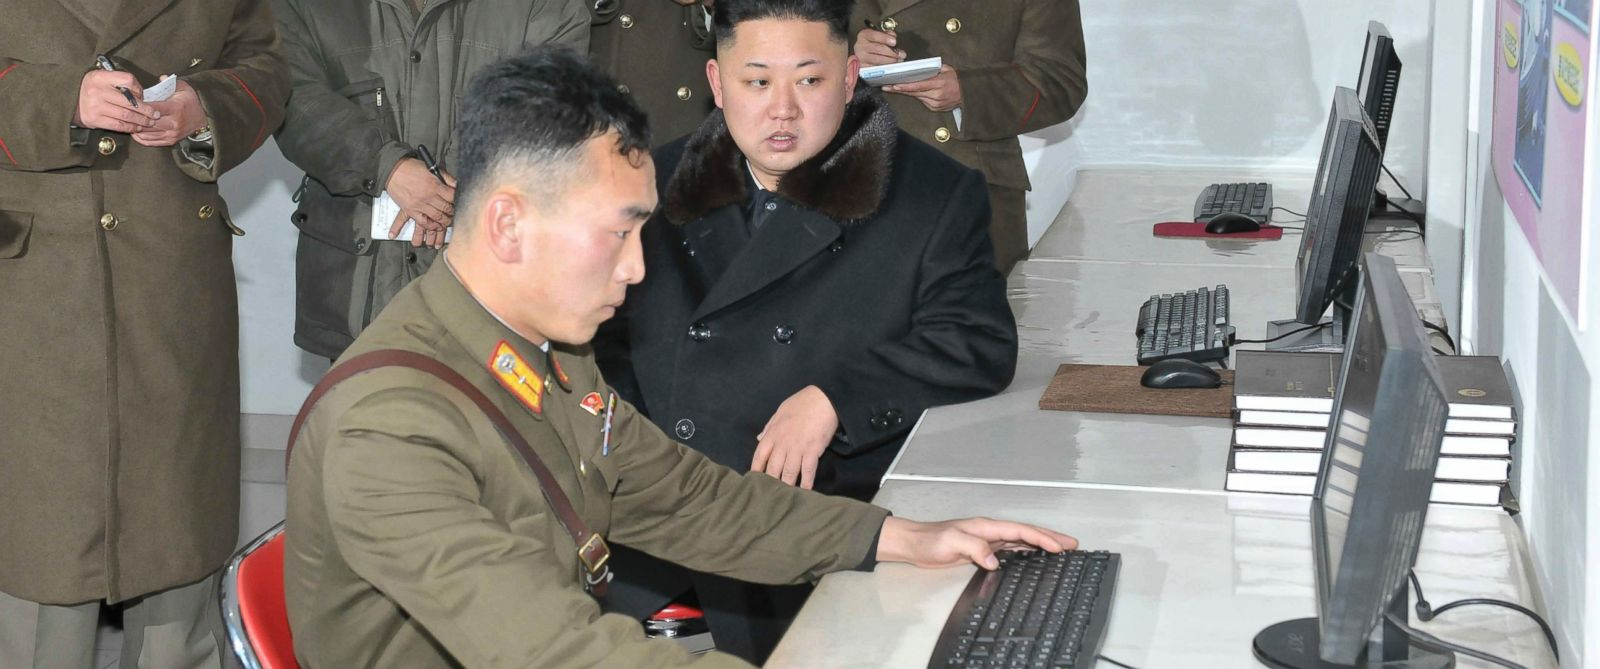 Image result for kim jong un photos, computer